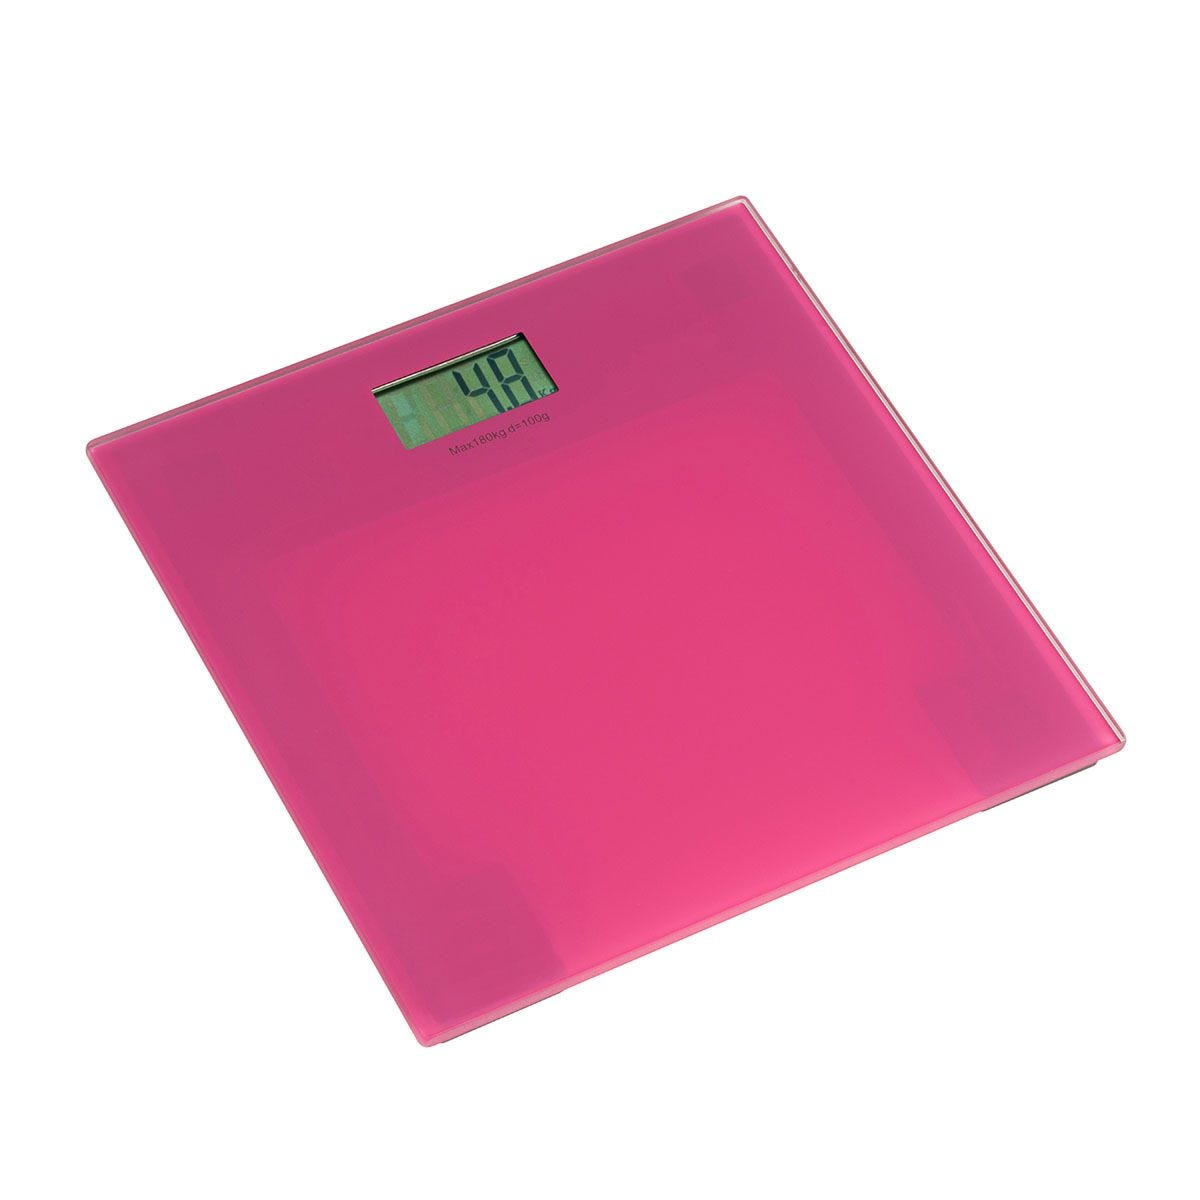 Premier Housewares Pink Tempered Glass Bathroom Scale